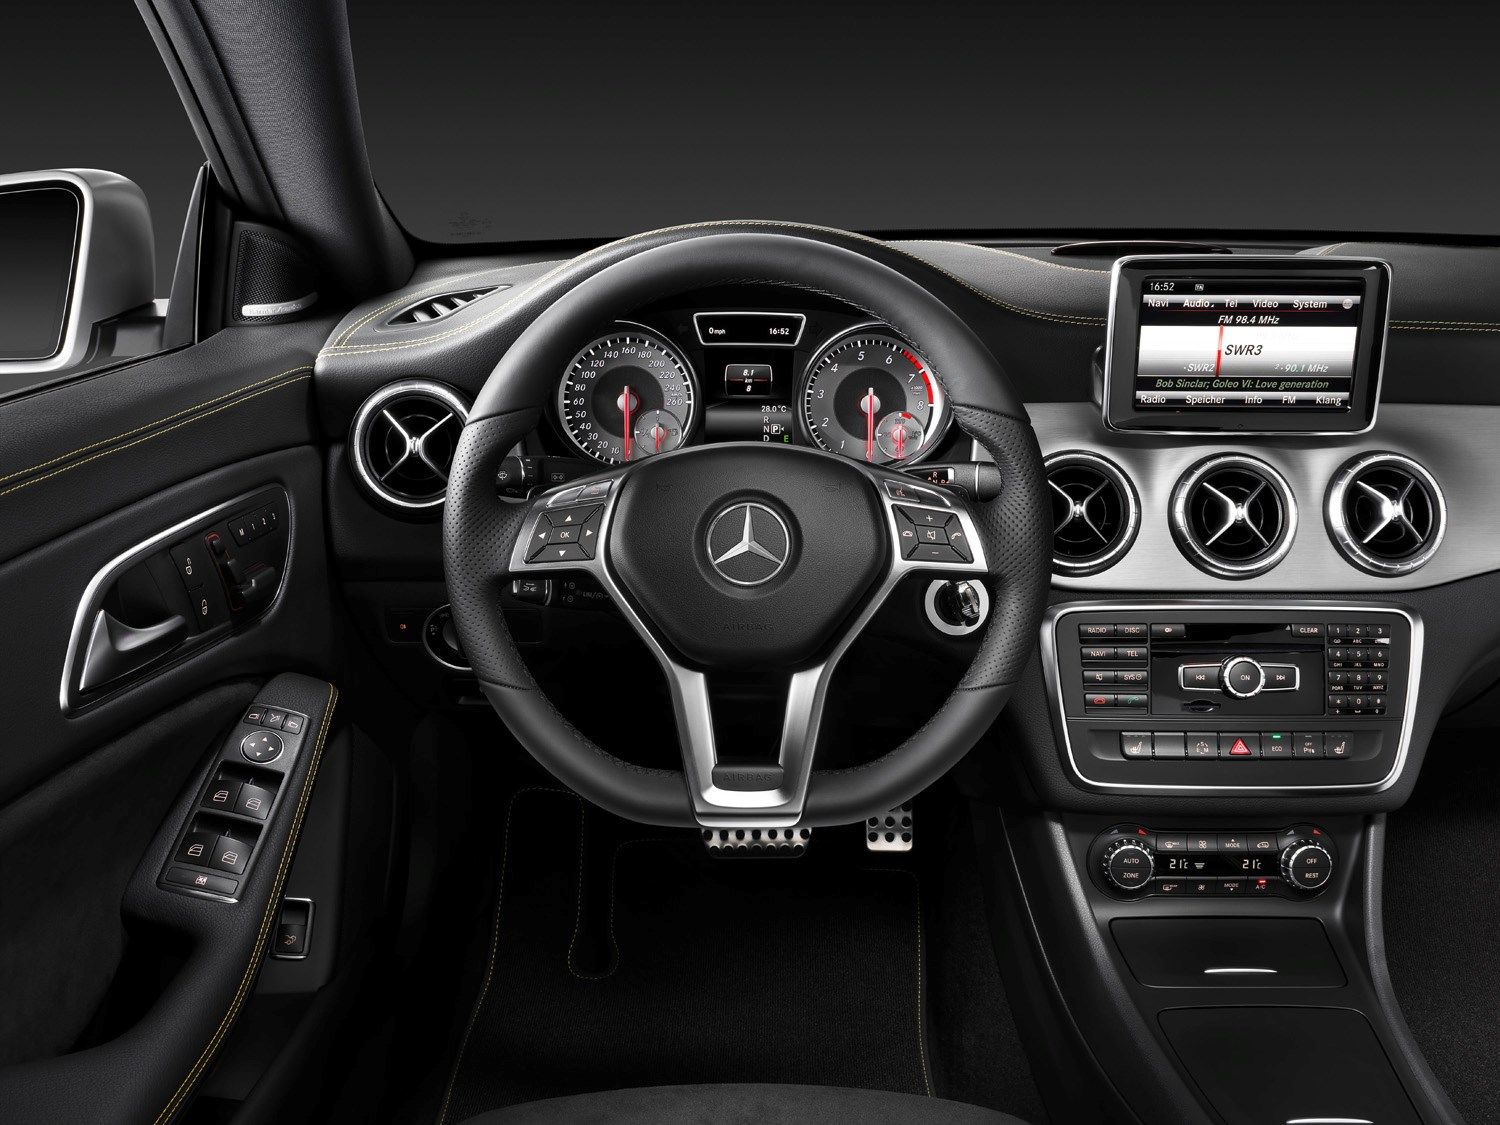 Mercedes Benz Cla Class Coupe Review 2013 Parkers